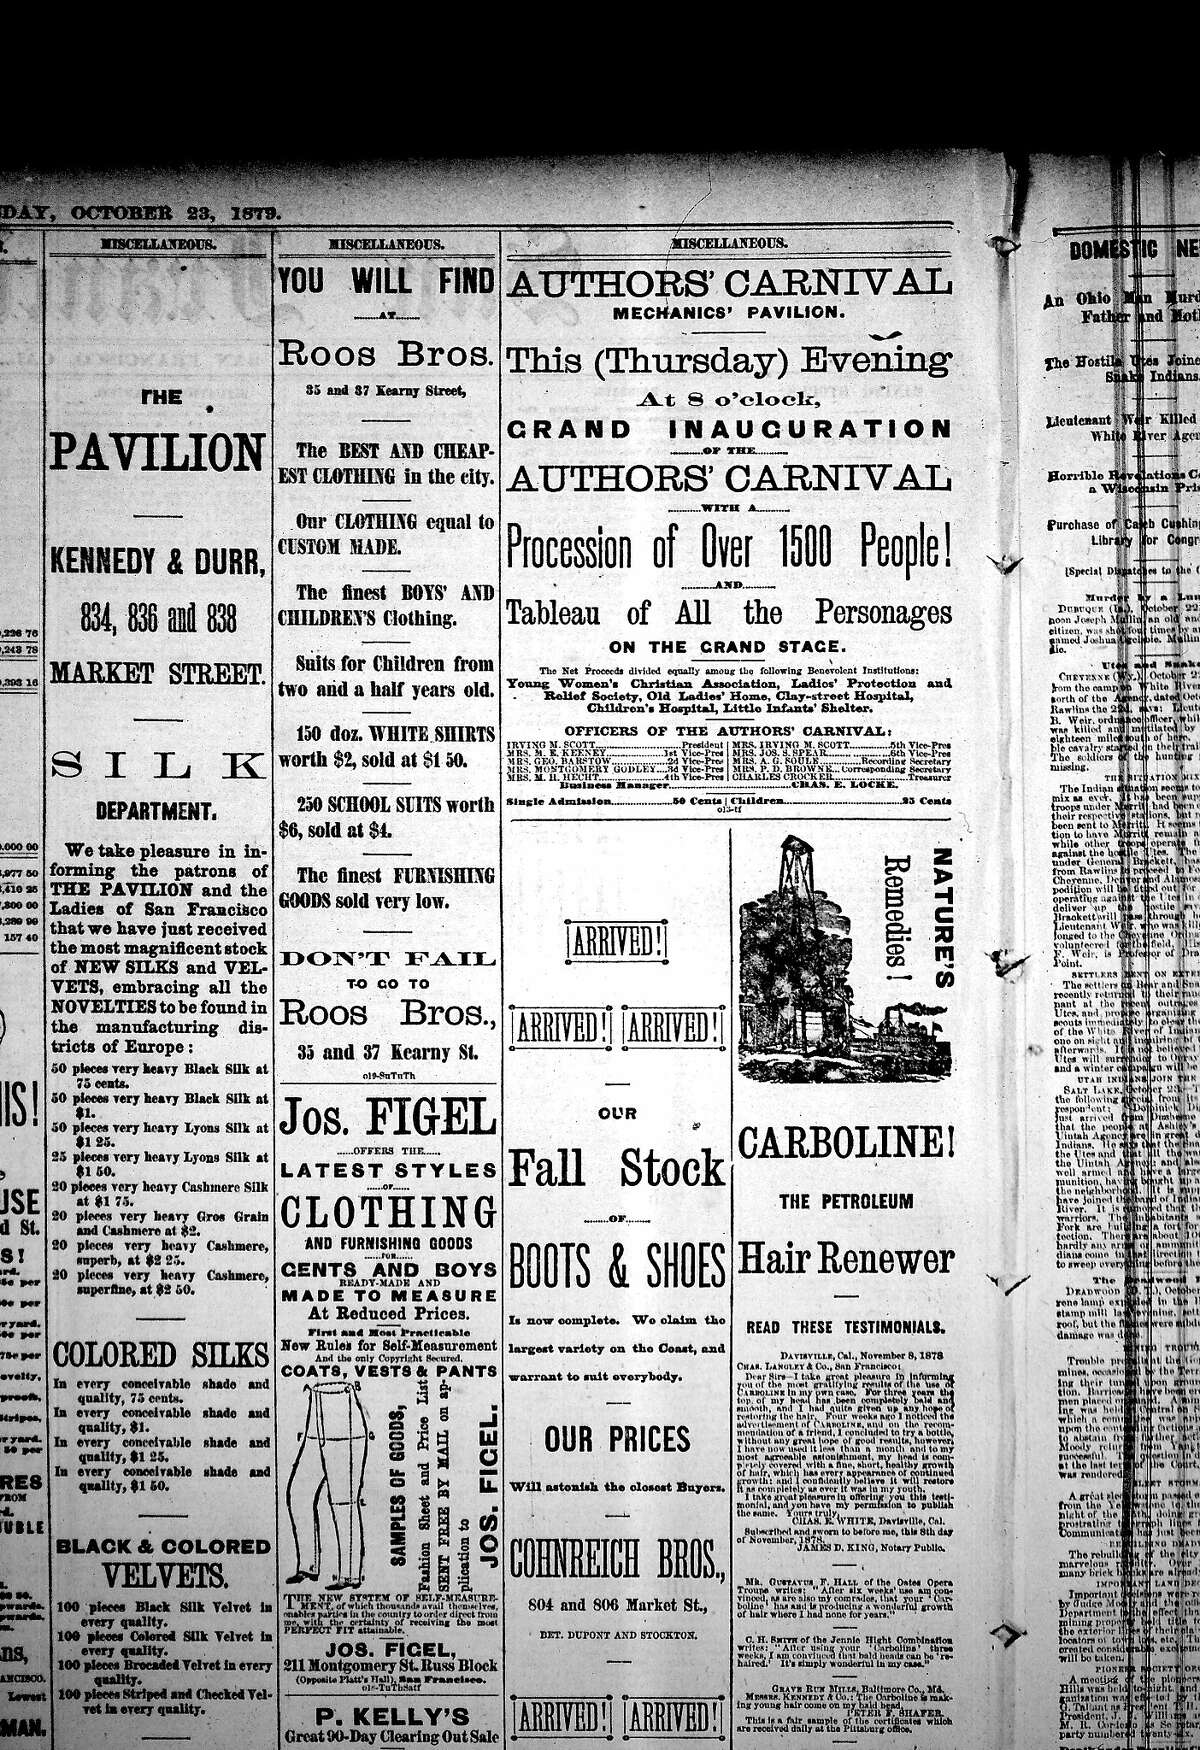 A newspaper ad from 1879 for the Authors' Carnival in San Francisco.